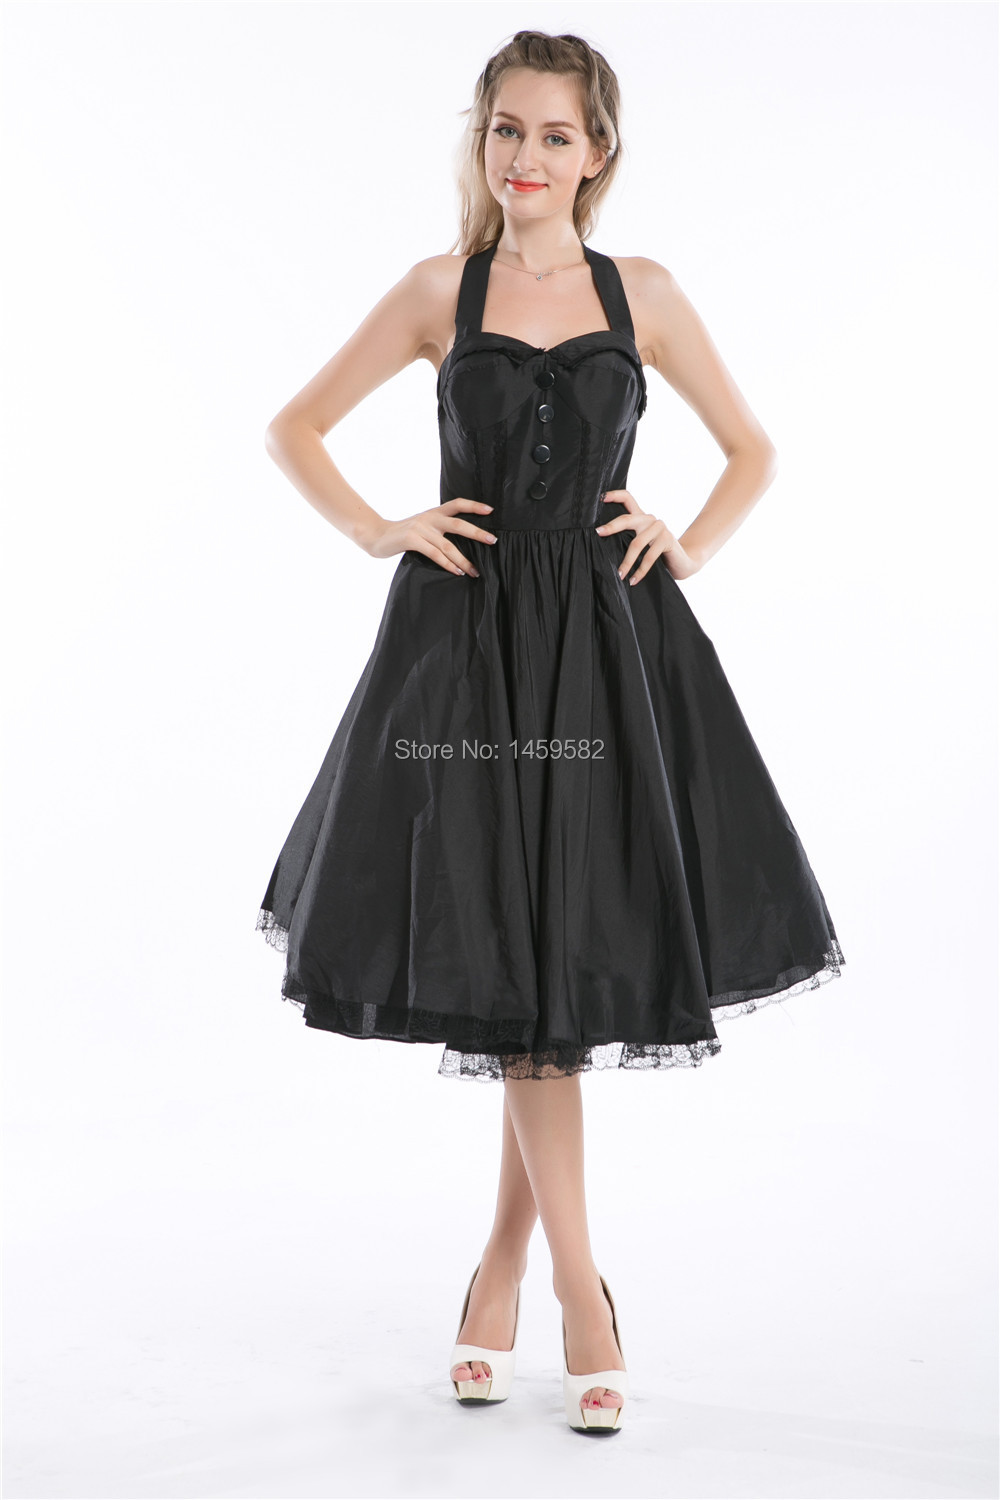 US $9.51 32% OFF|1027 BLACK PINUP ROCKABILLY VTG SWING PROM PARTY DRESS UK  Plus size 7XL 8XL-in Dresses from Women\'s Clothing on AliExpress - ...